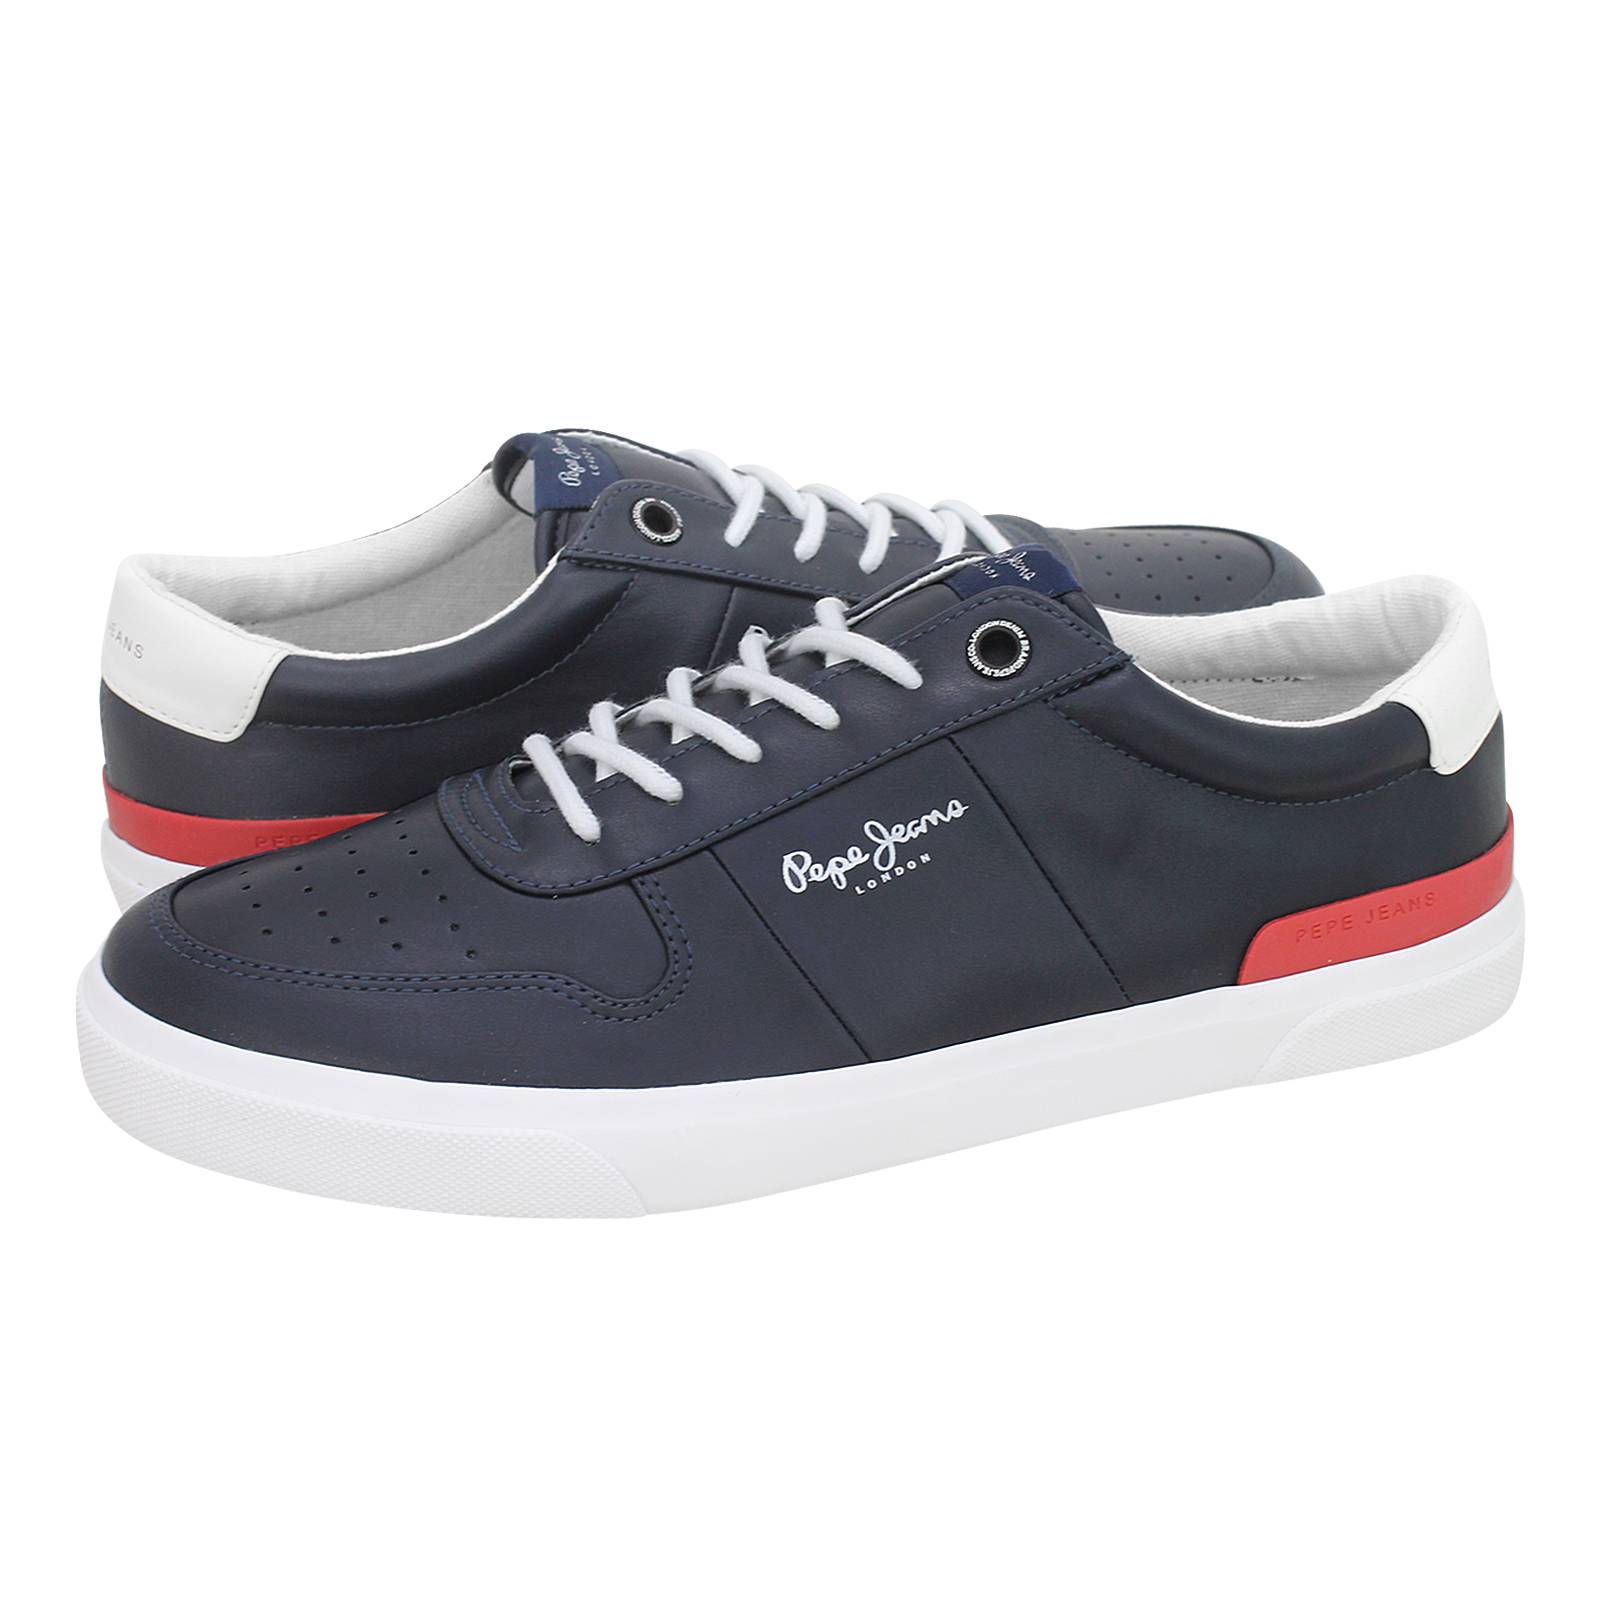 90d10fbe2ce Παπούτσια casual Pepe Jeans Traveller